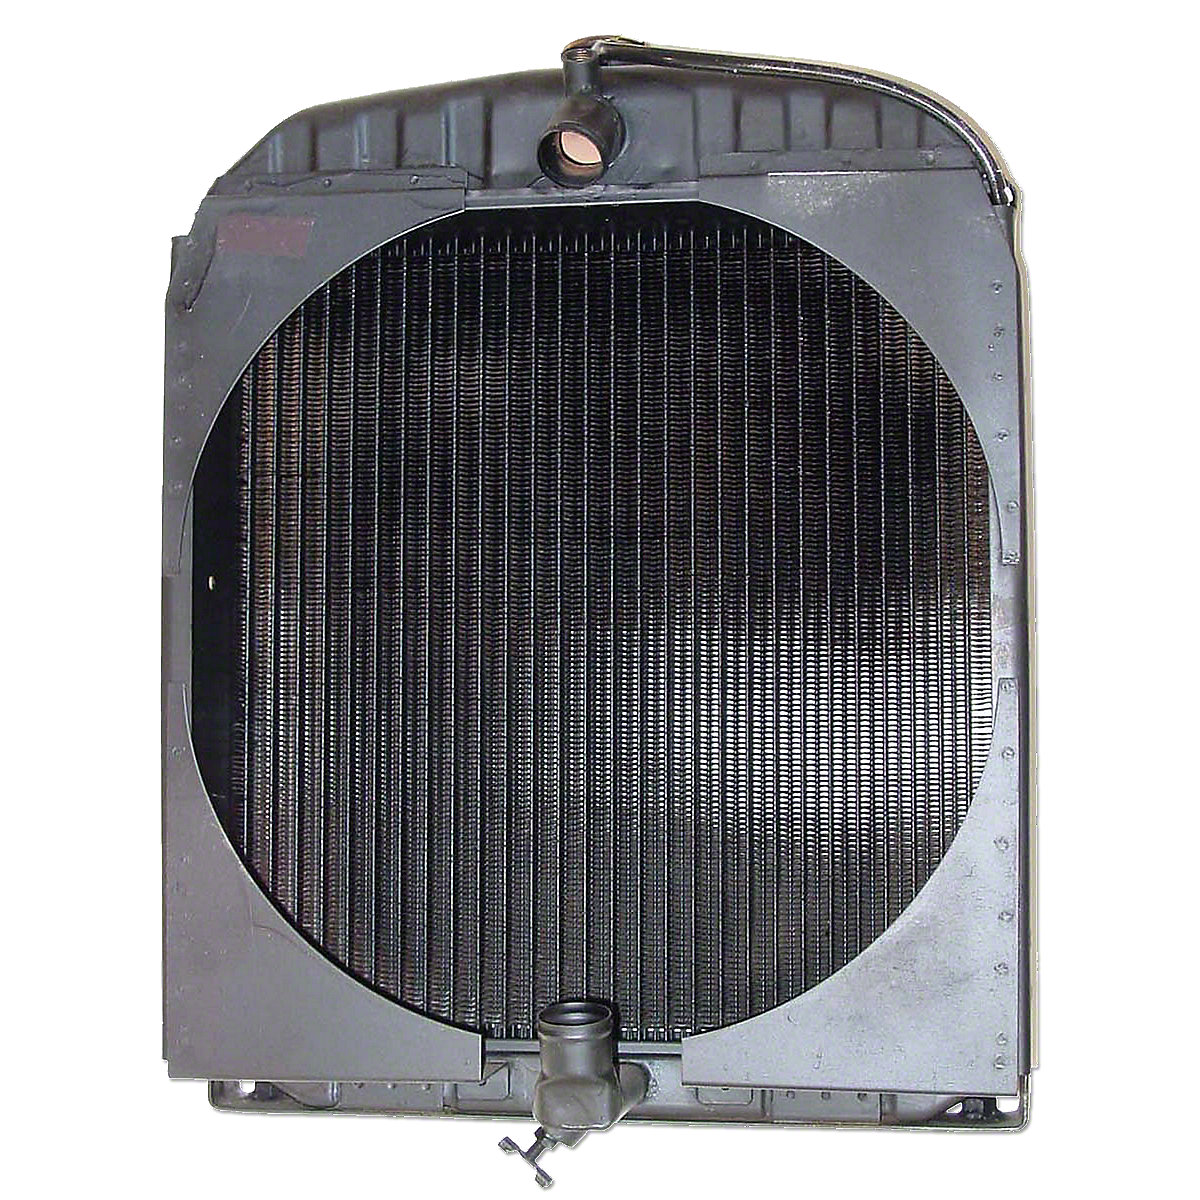 Pressurized Radiator For Allis Chalmers: Styled WC And WF, WD And WD45 Gas Models.